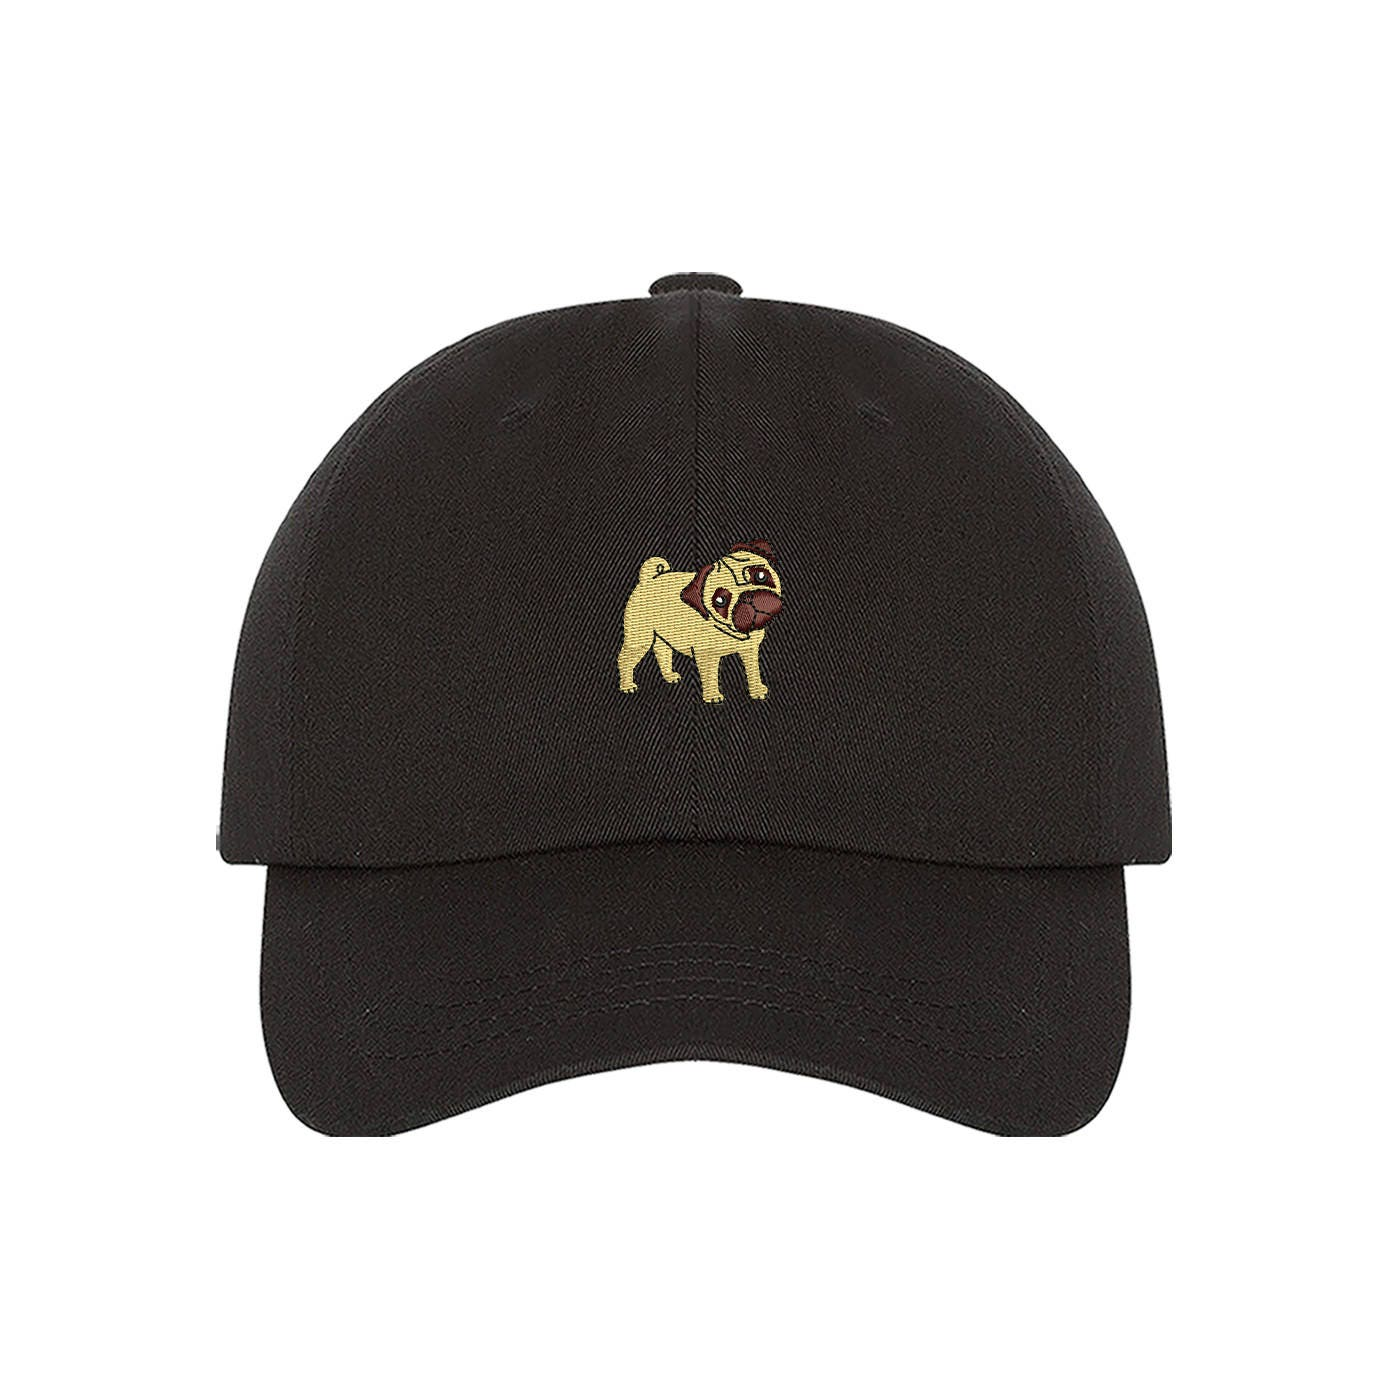 410eaffe99d PUG Dad Hat Dog Lover Hat Embroidered Baseball Cap Pug Hat Pug Dog ...